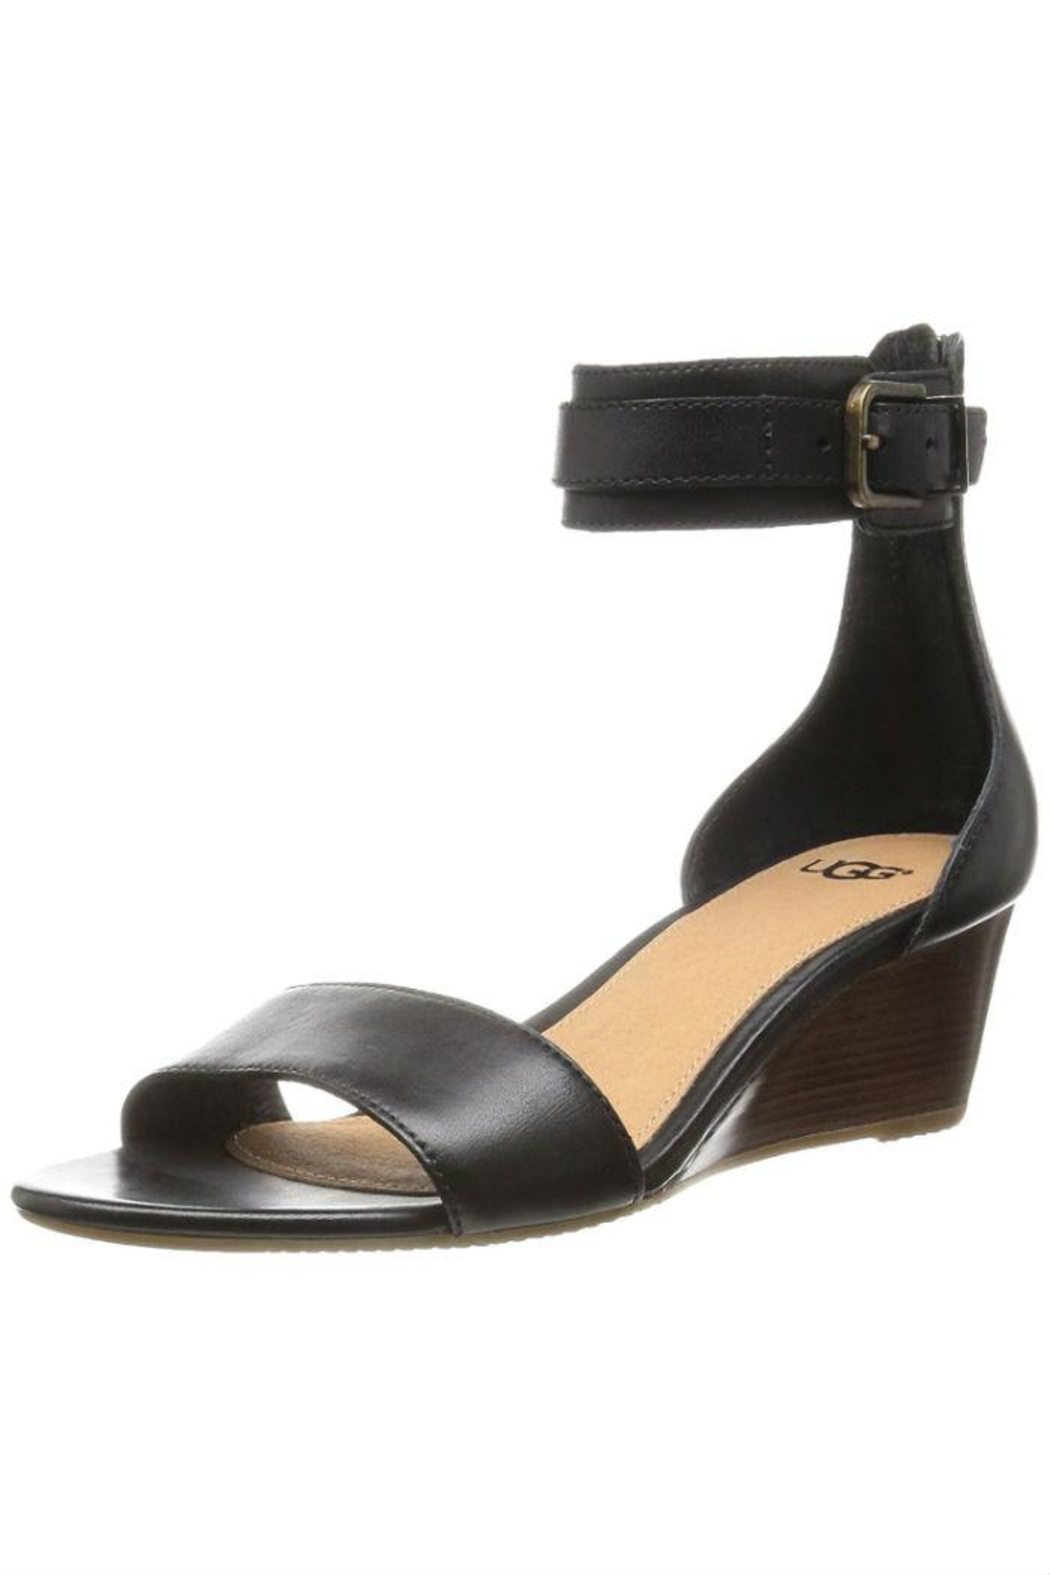 58162dfe4e6 UGG Australia Char Wedge Sandals from Montreal by Boutique TAG ...